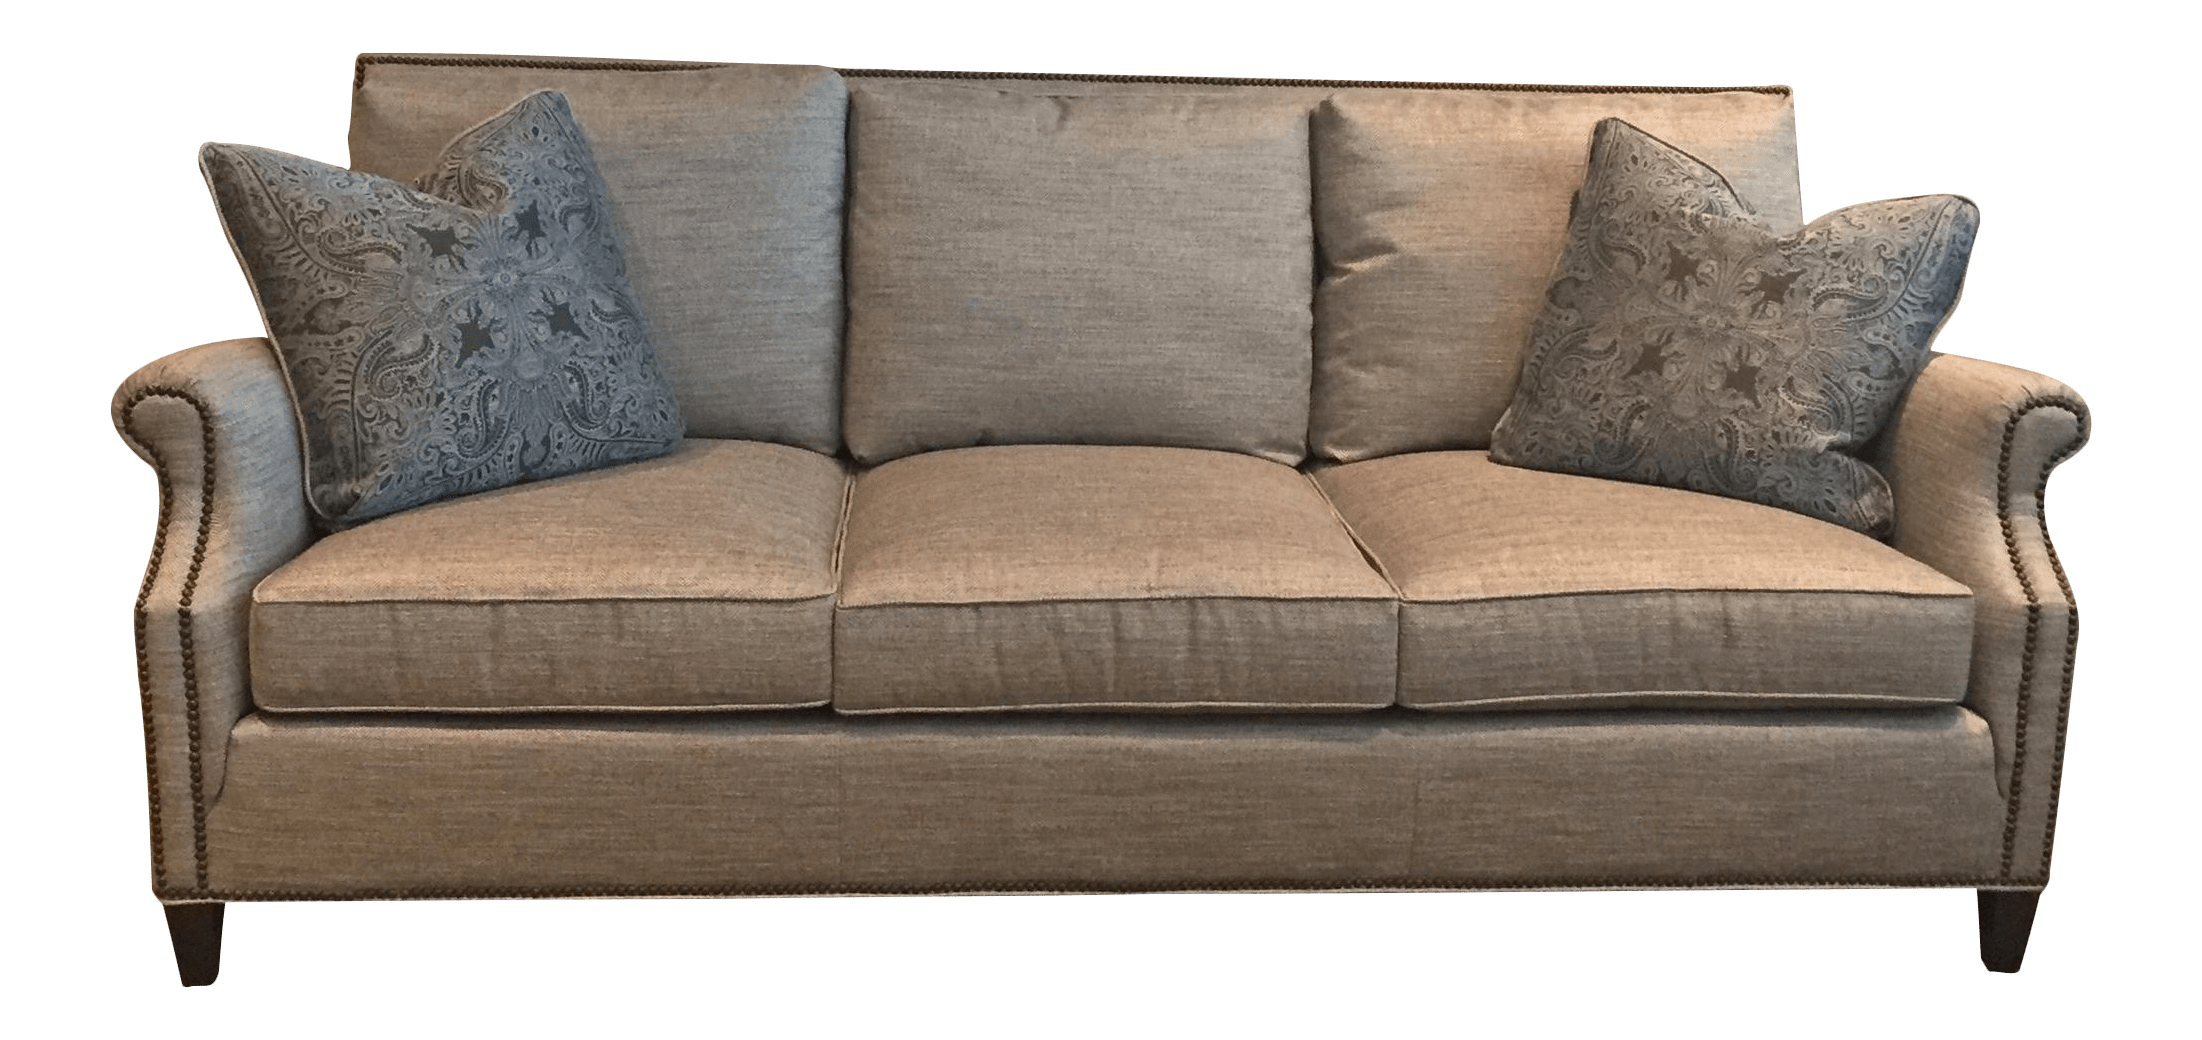 As a general rule, an odd number of pillows makes for the most natural, inviting arrangement: Huntington House Gray Sofa & Decorative Pillows   Chairish